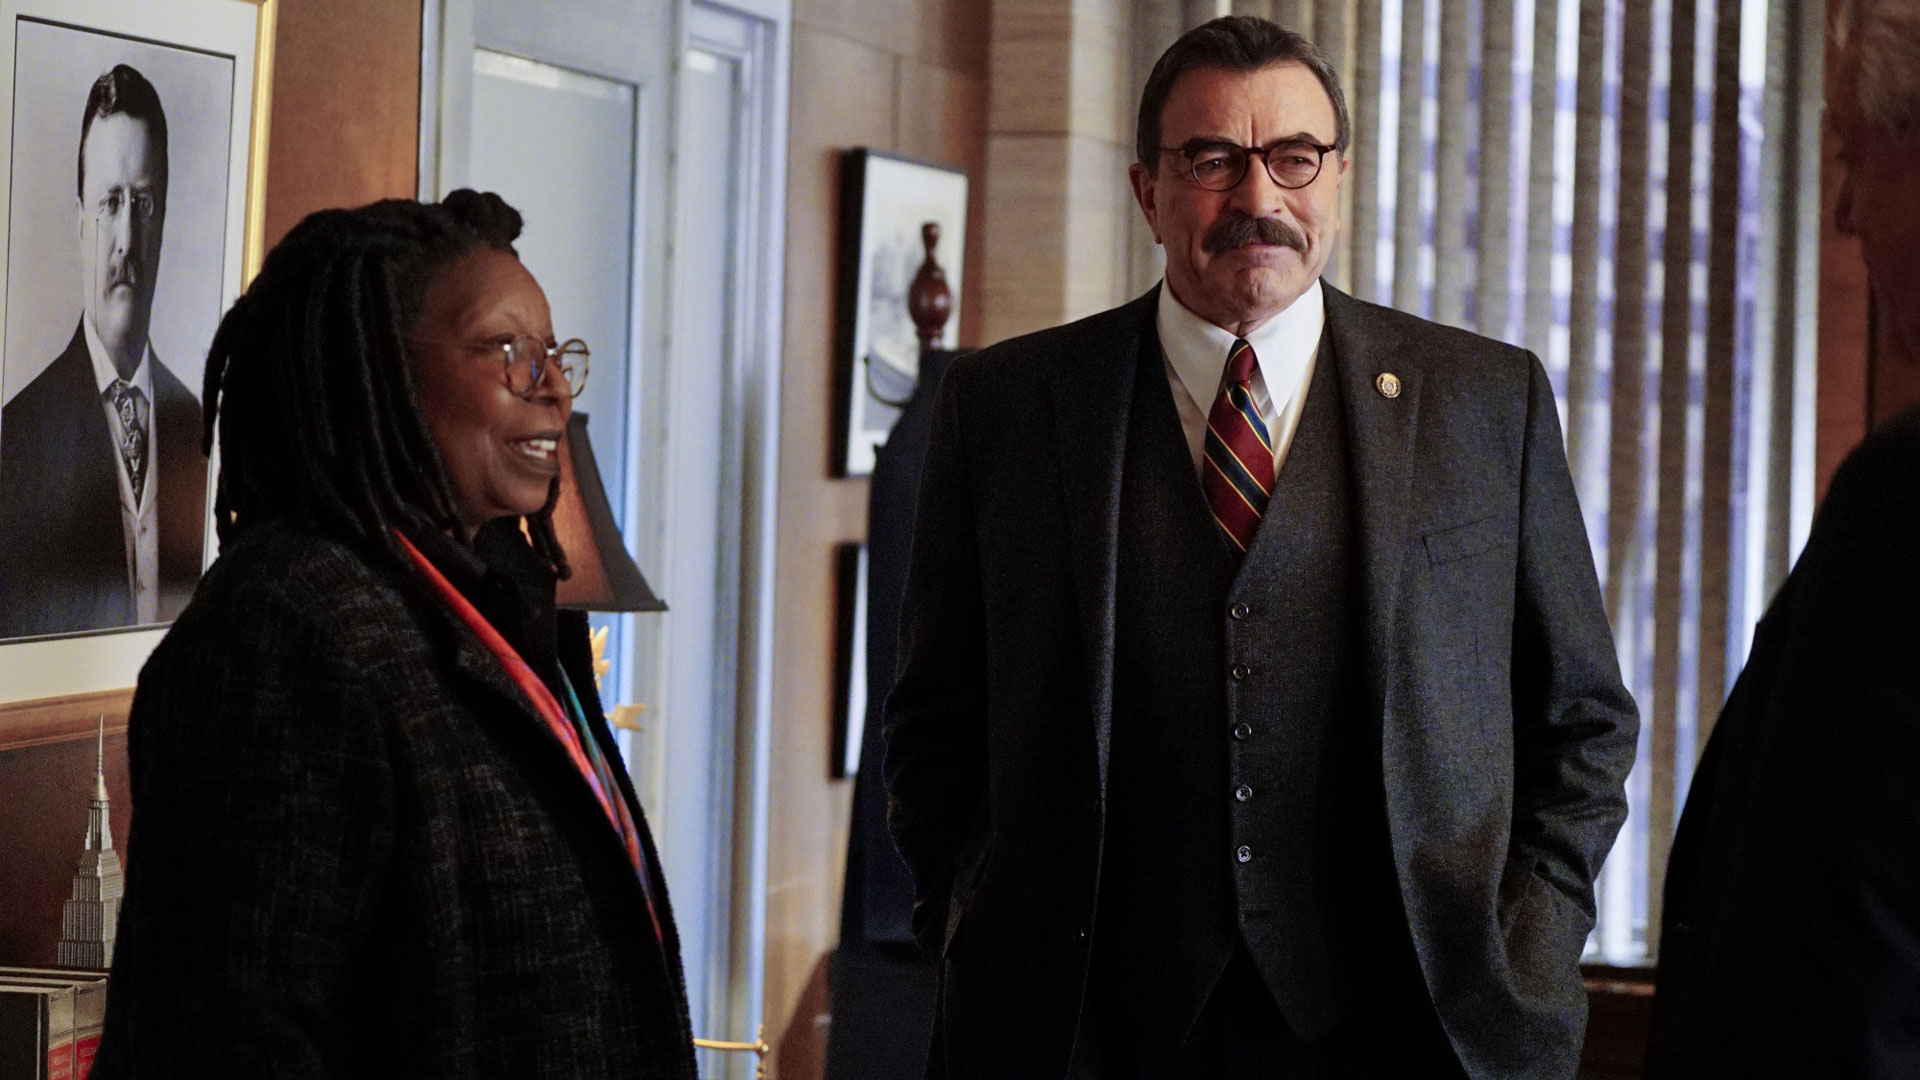 Whoopi Goldberg as City Council Speaker Regina Thomas and Tom Selleck as Frank Reagan